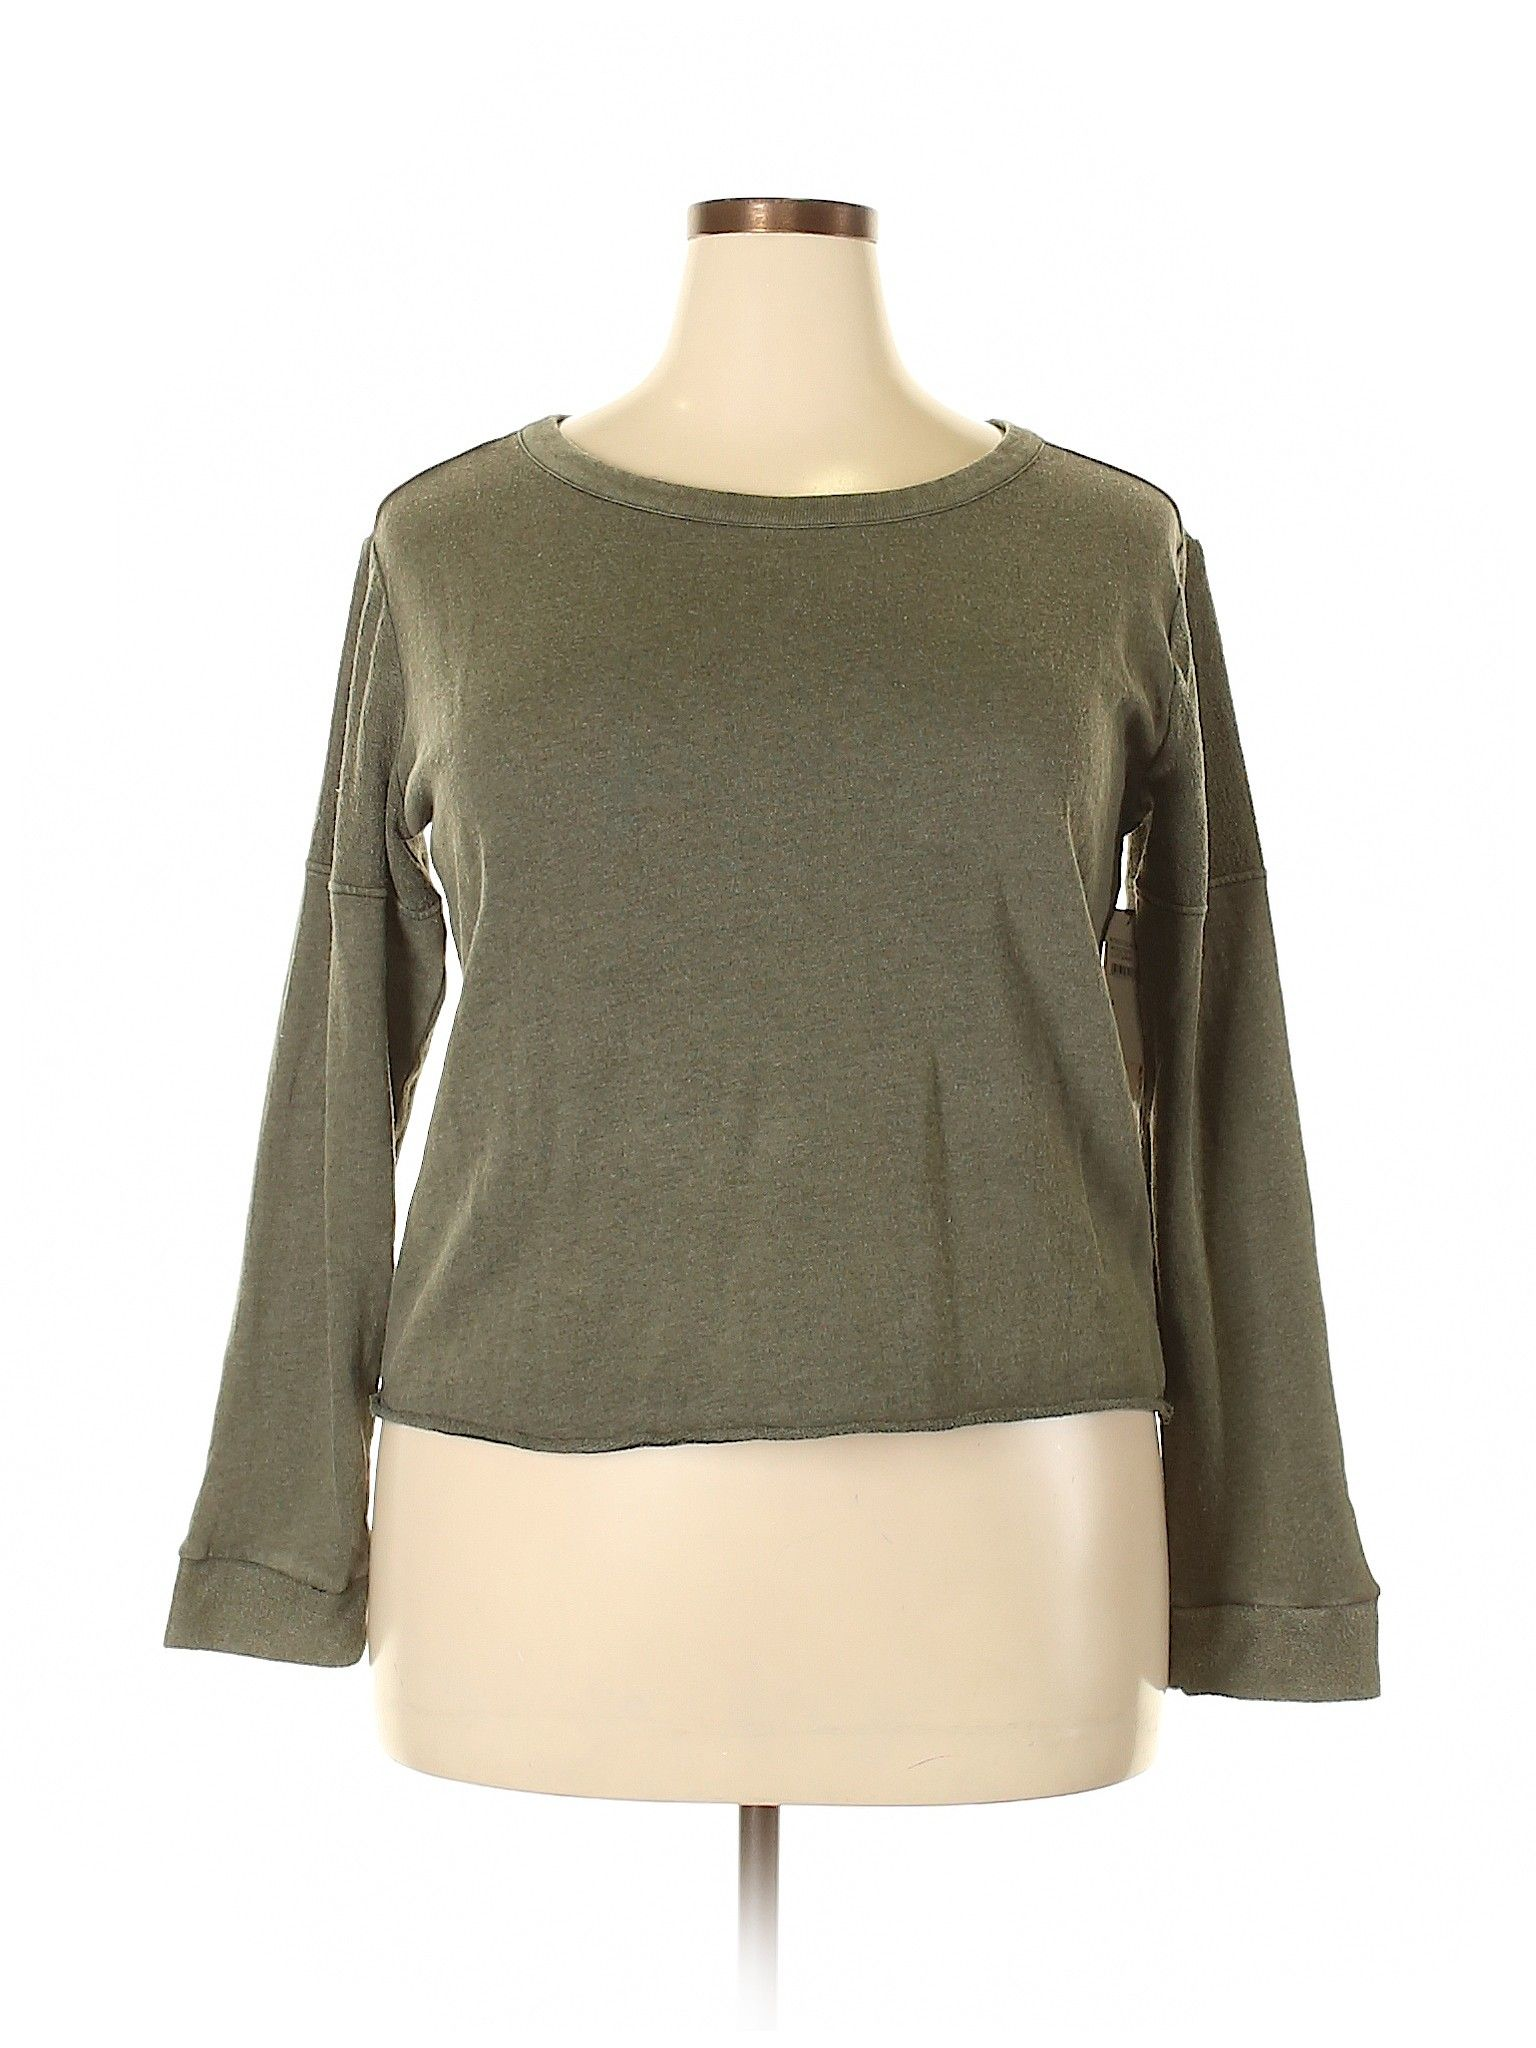 Melrose And Market Sweatshirt Green Solid Scoop Neck Women S Clothing Size 1x Womens Clothing Sizes Clothes